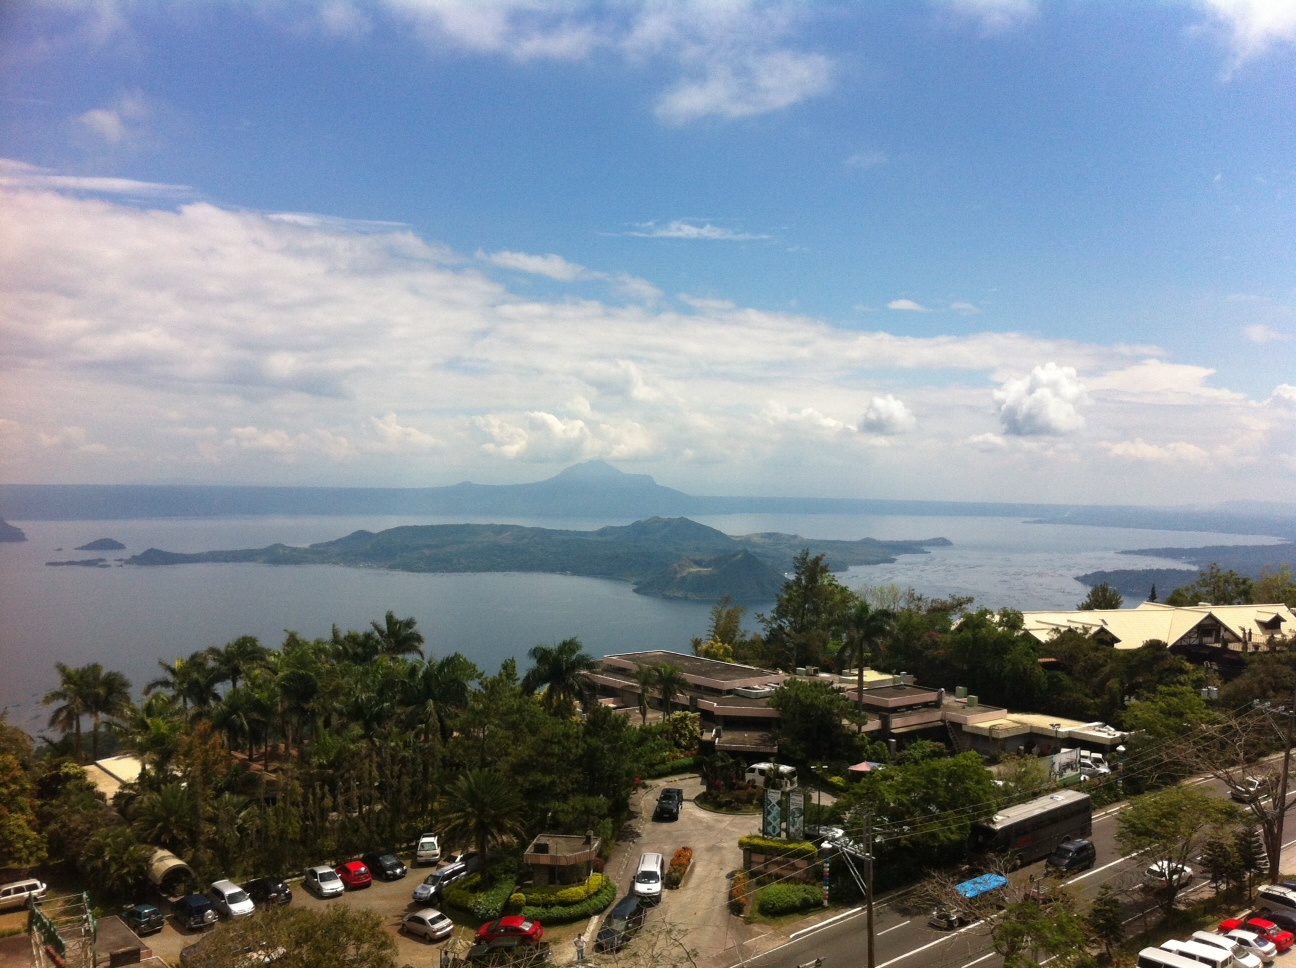 Lake Taal from above